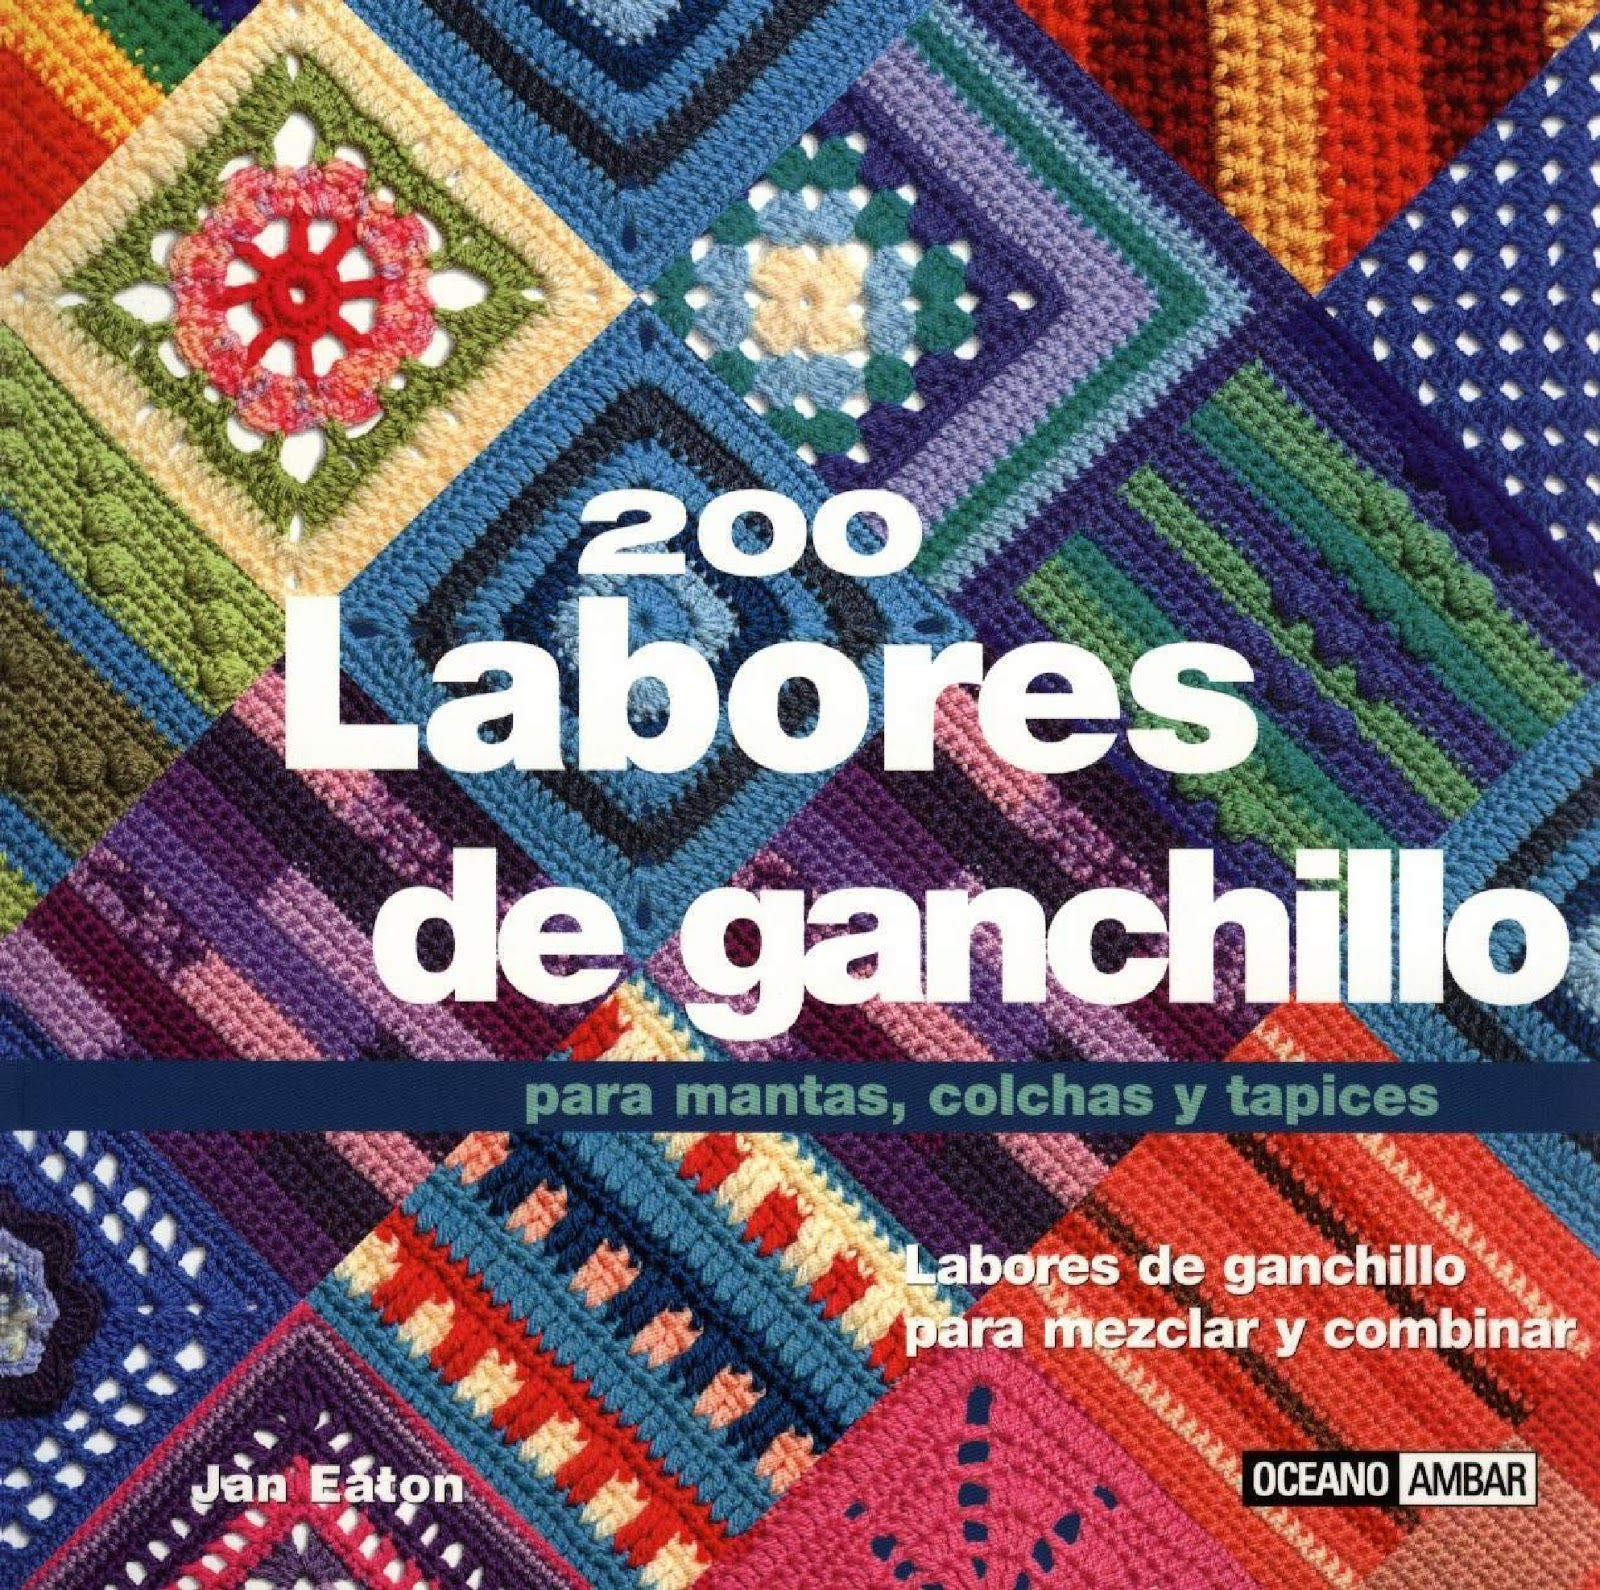 Descargar Libro 200 Labores de Ganchillo GRATIS!